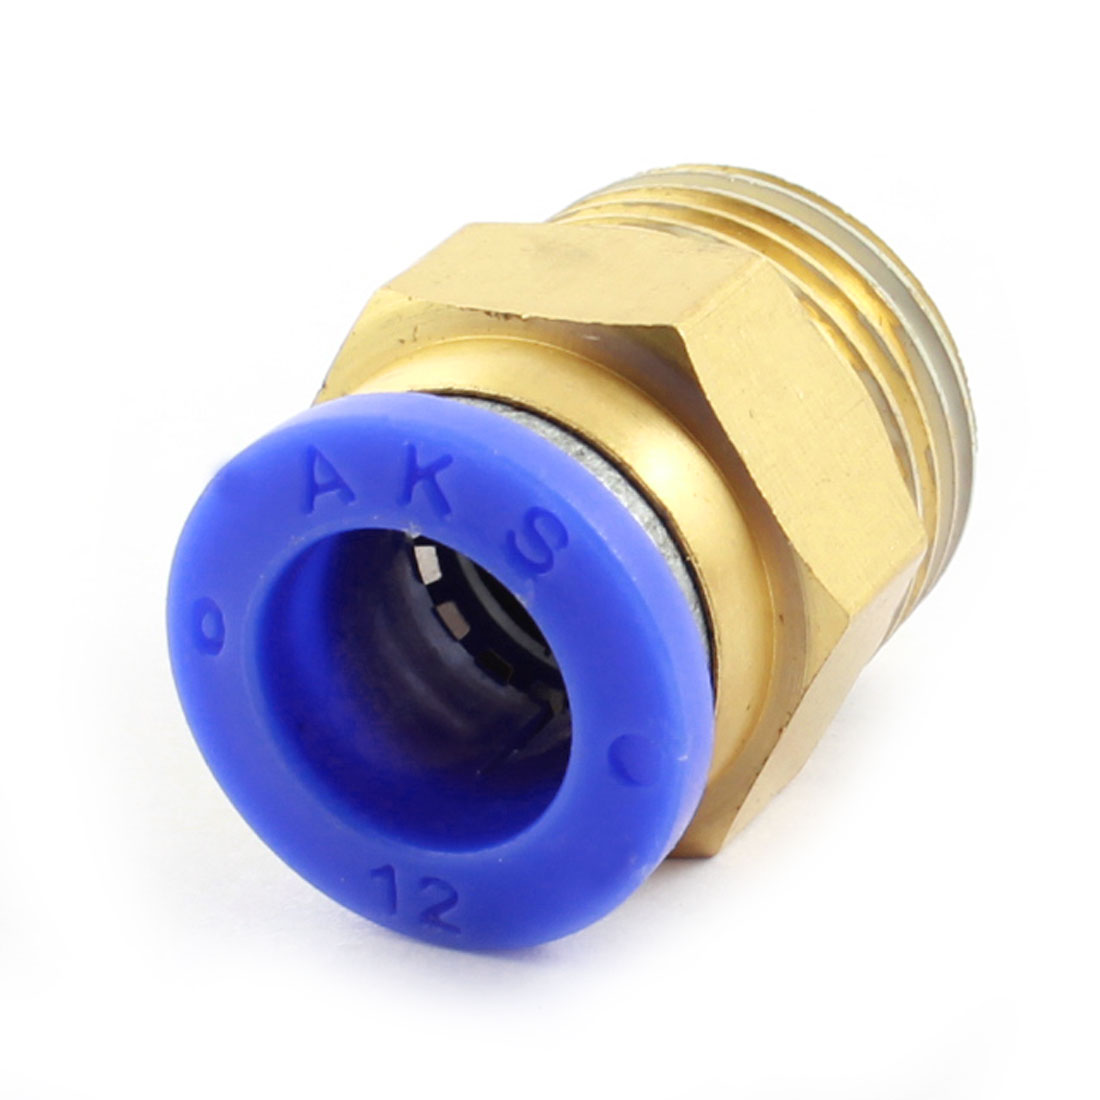 Unique Bargains Air Compressor 1/2PT to 12mm Pipe Hose Quick Coupling Connector Adapter